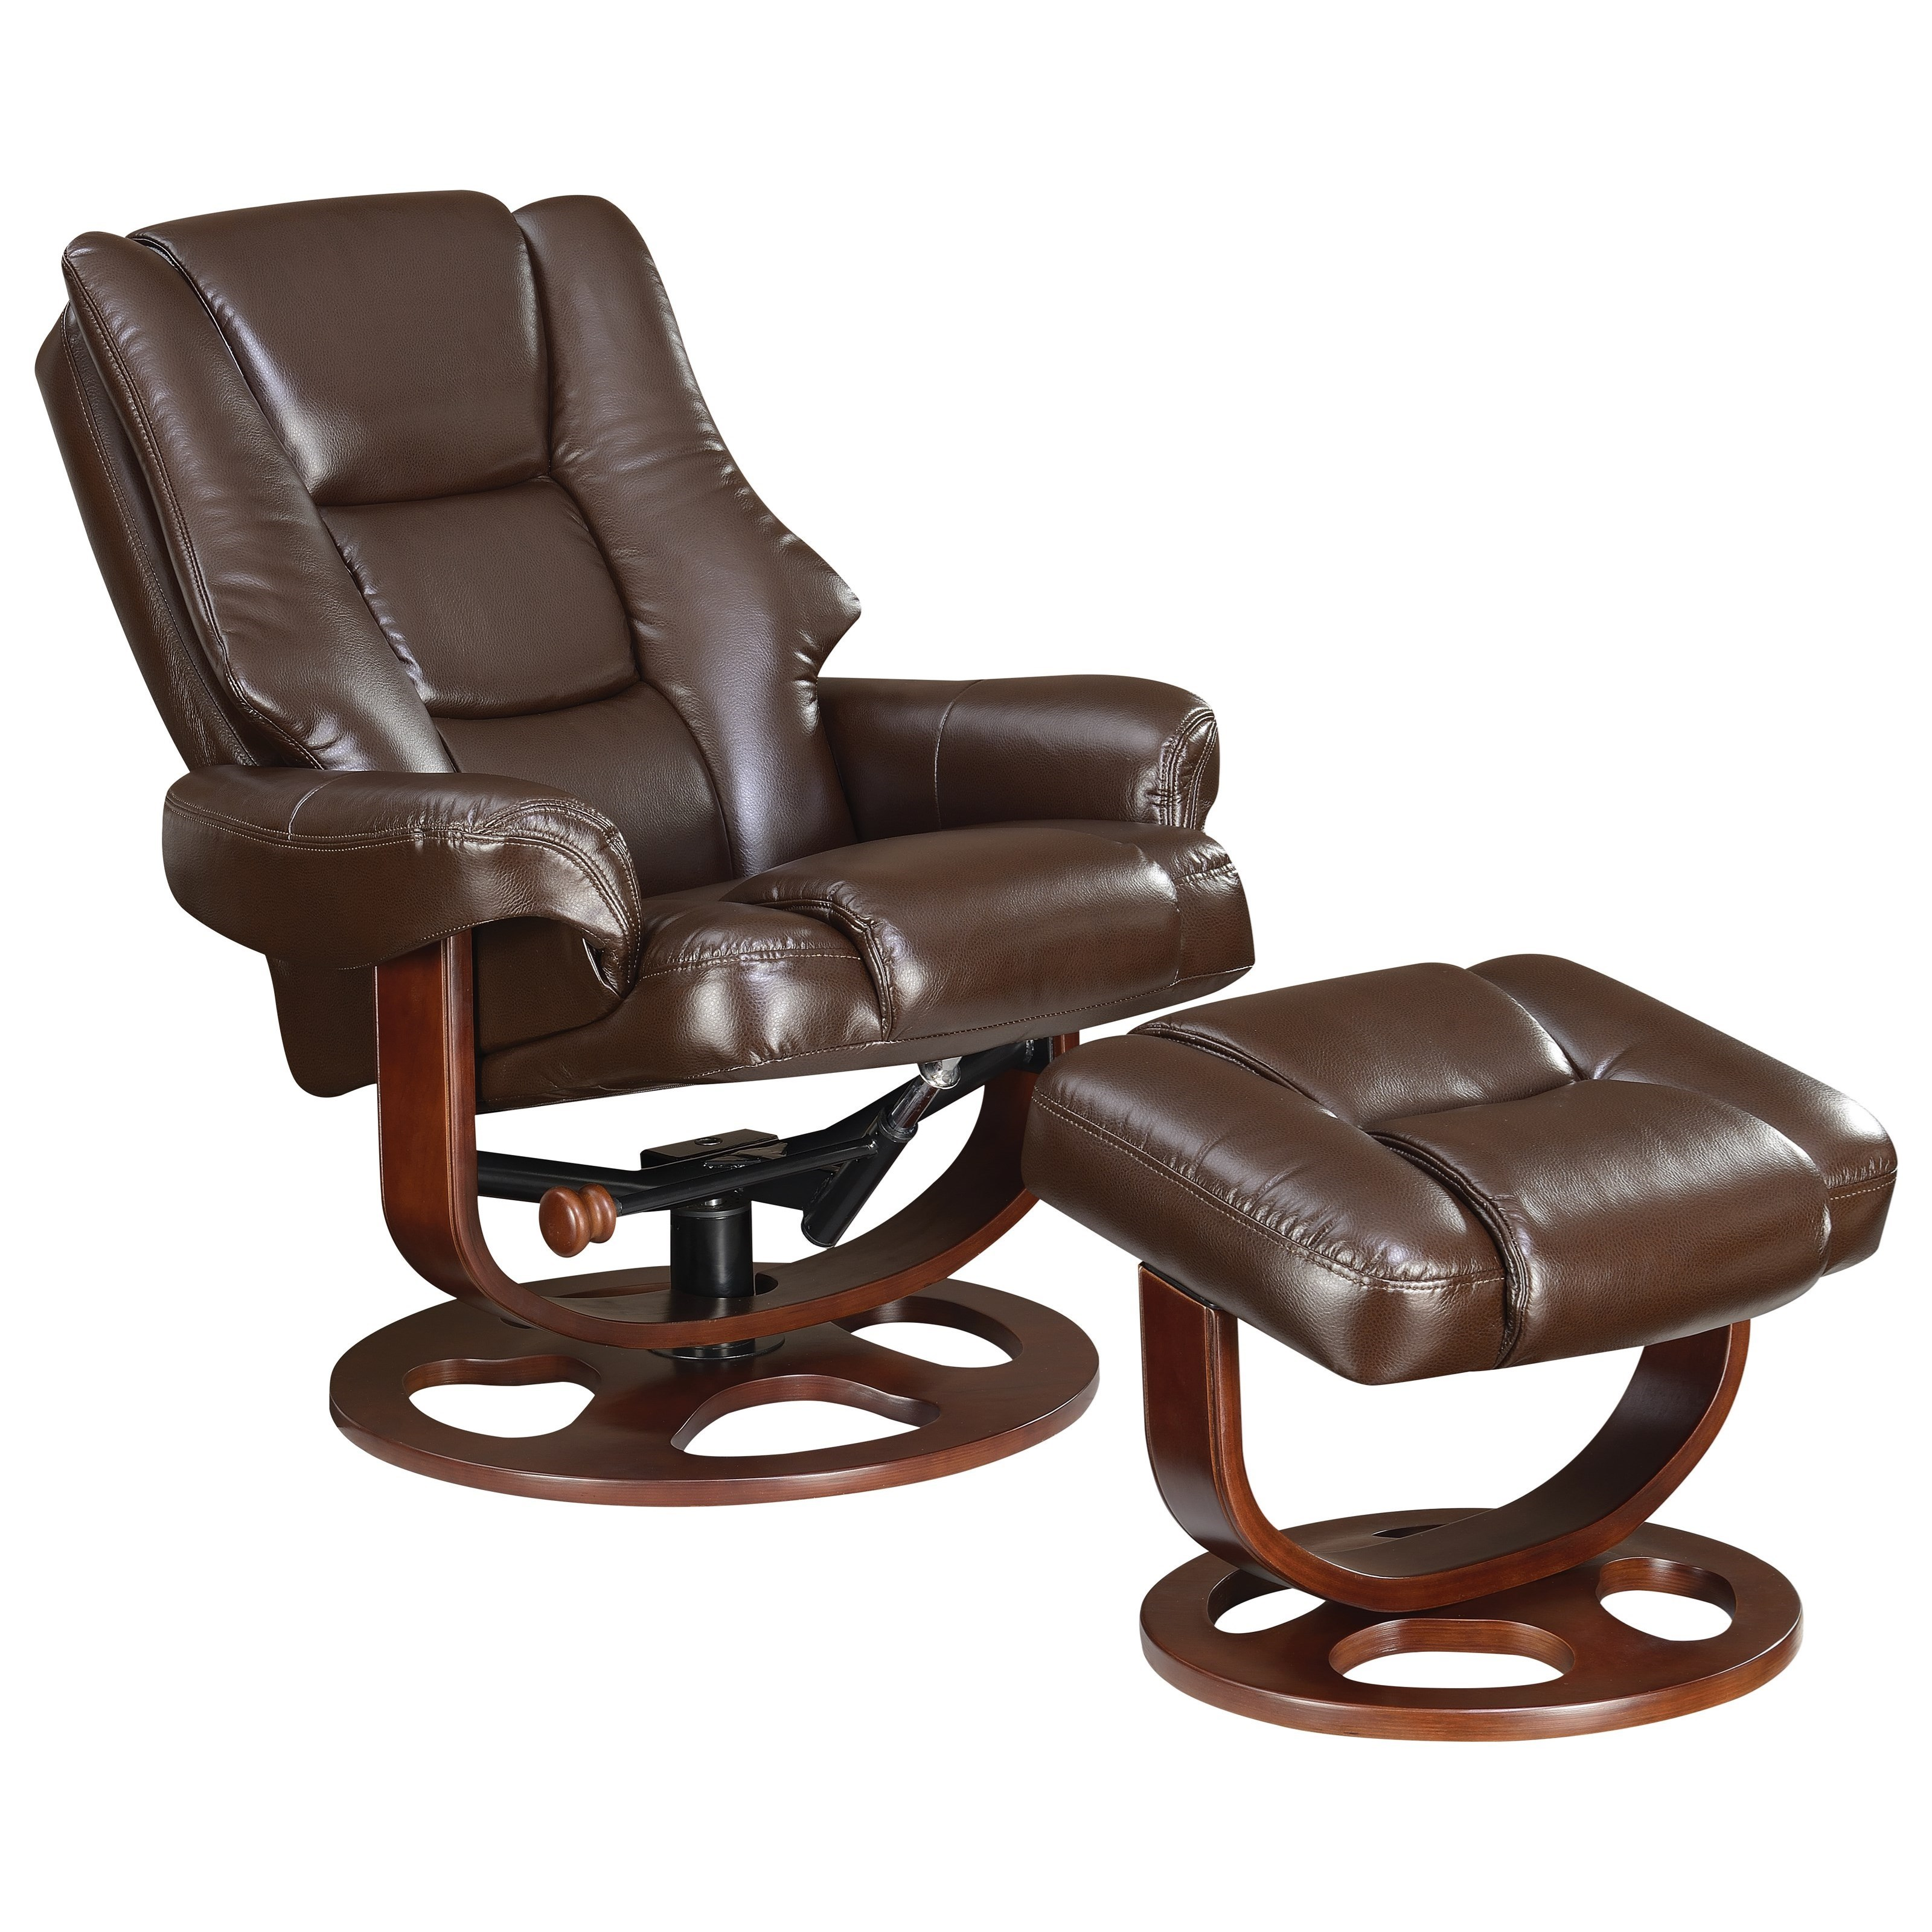 Coaster recliners with ottomans 600086 plush recliner and for Recliner chairs with ottoman